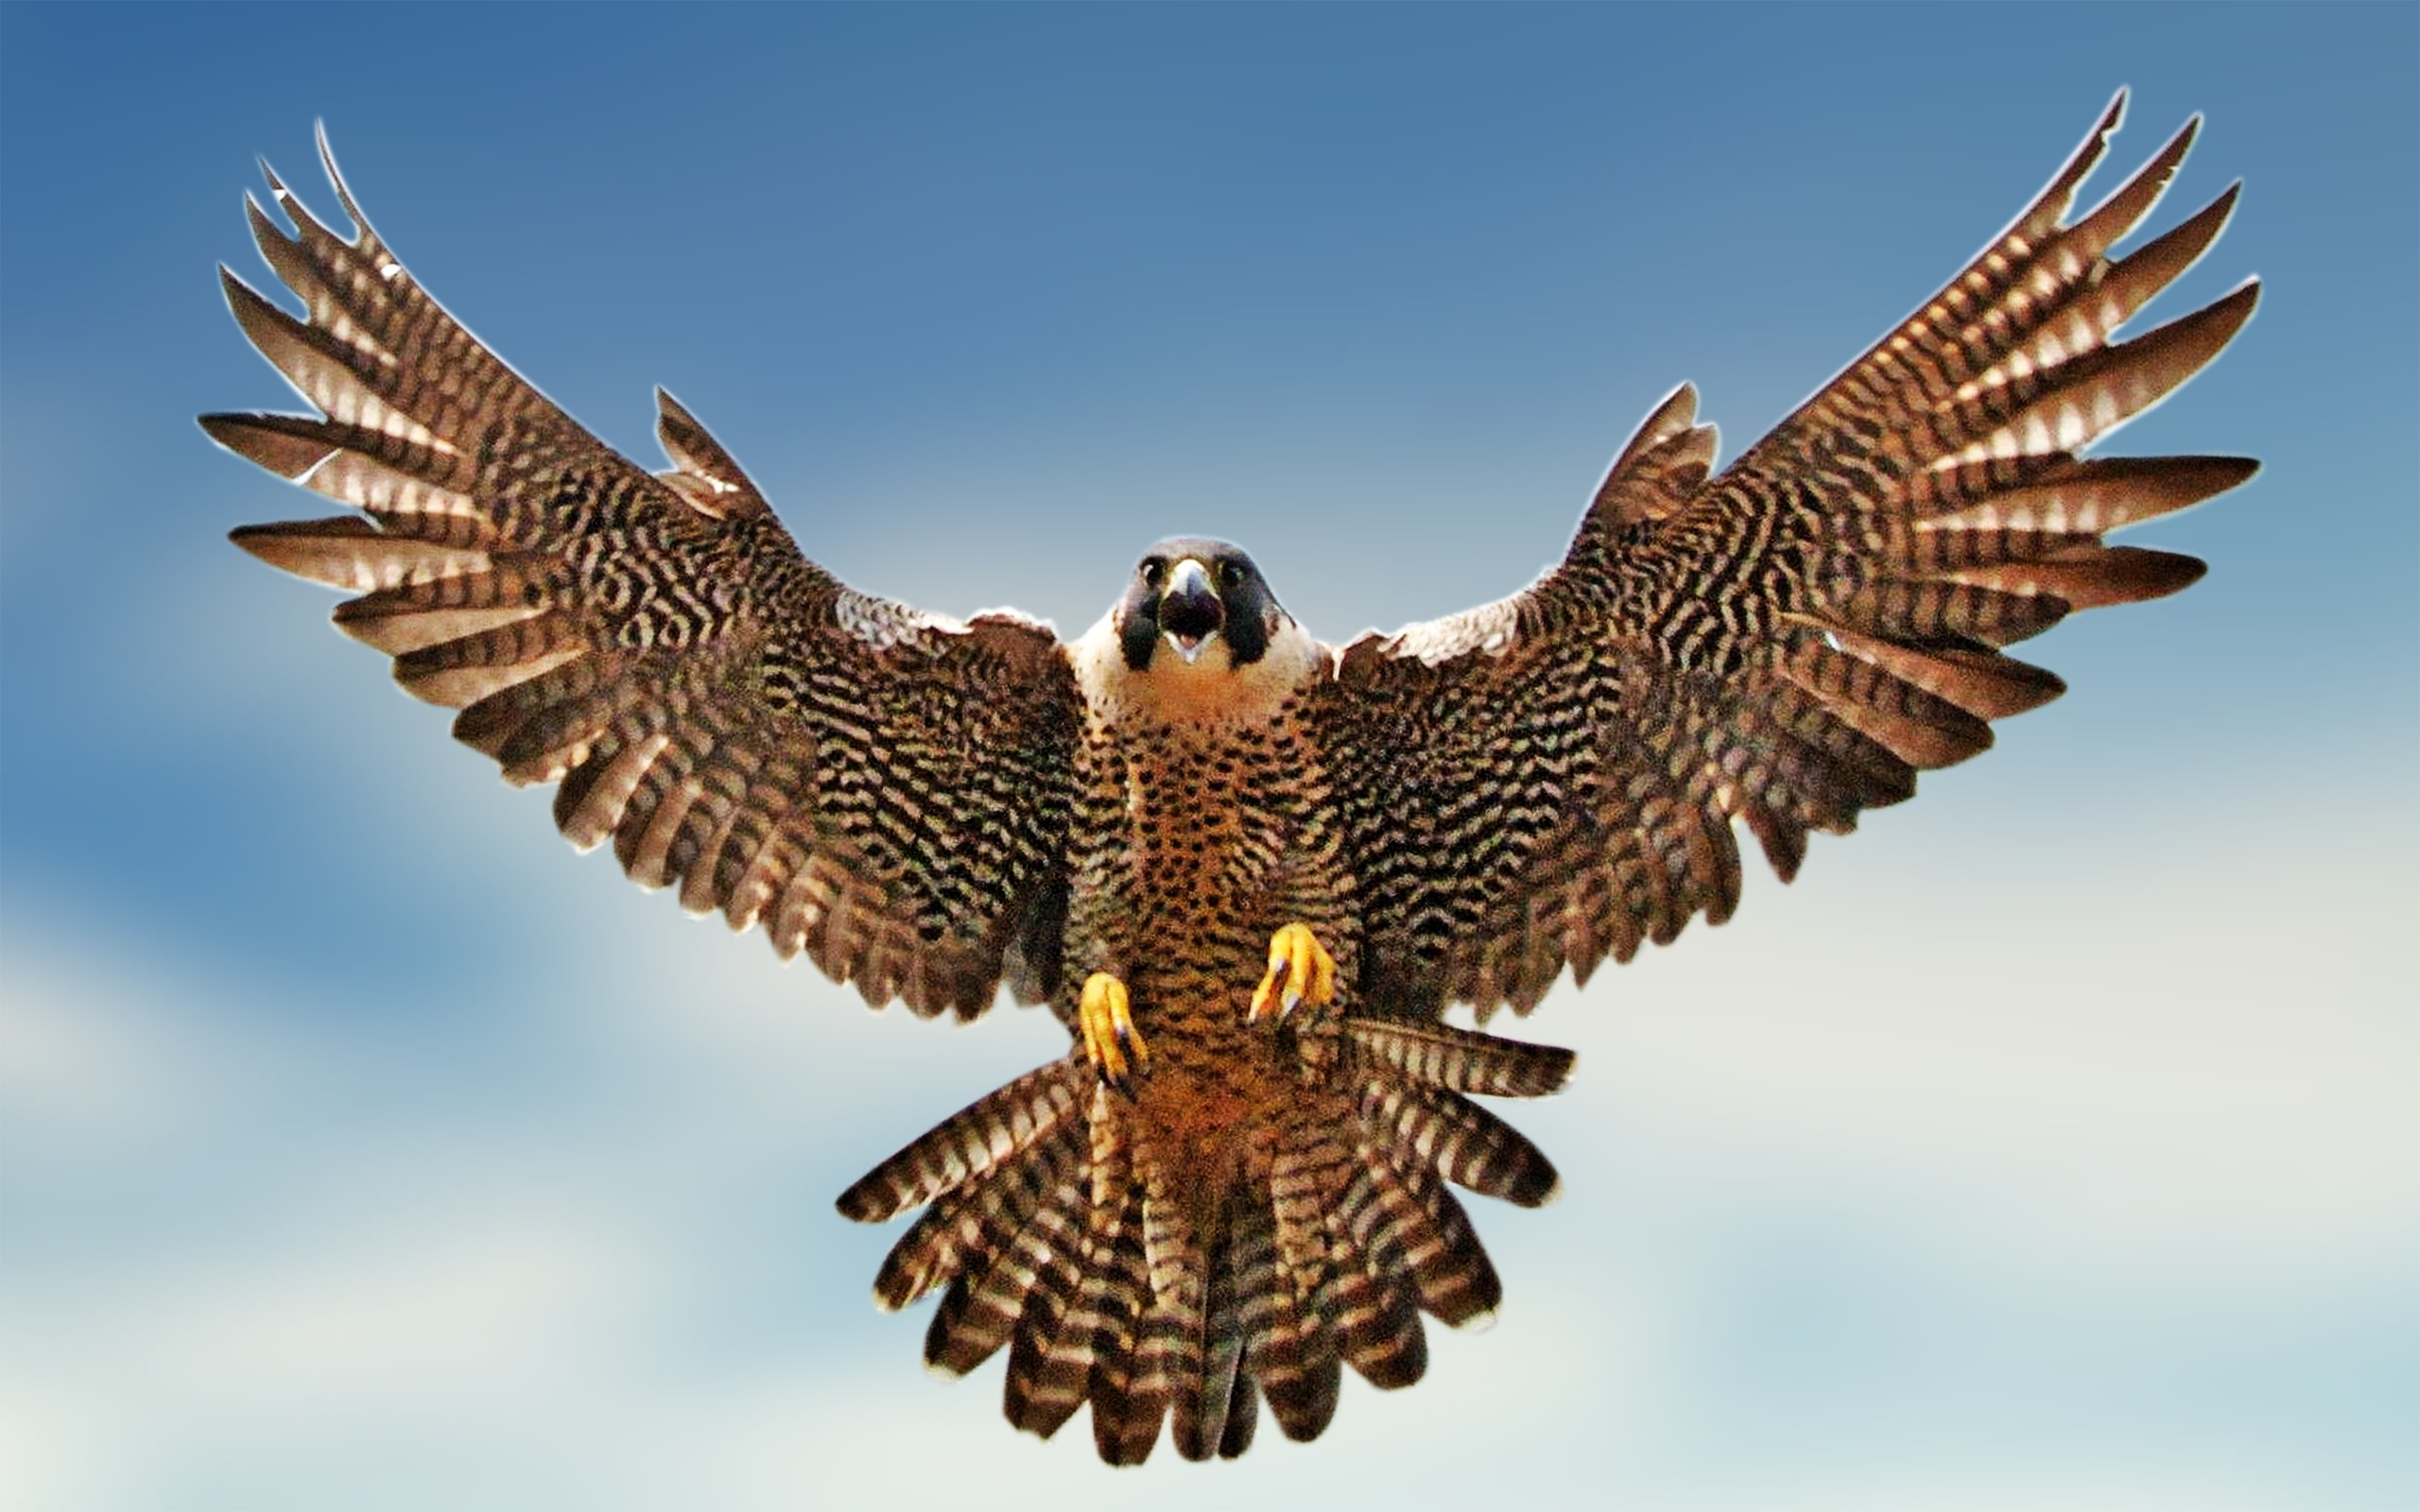 Falcon High Quality Background on Wallpapers Vista